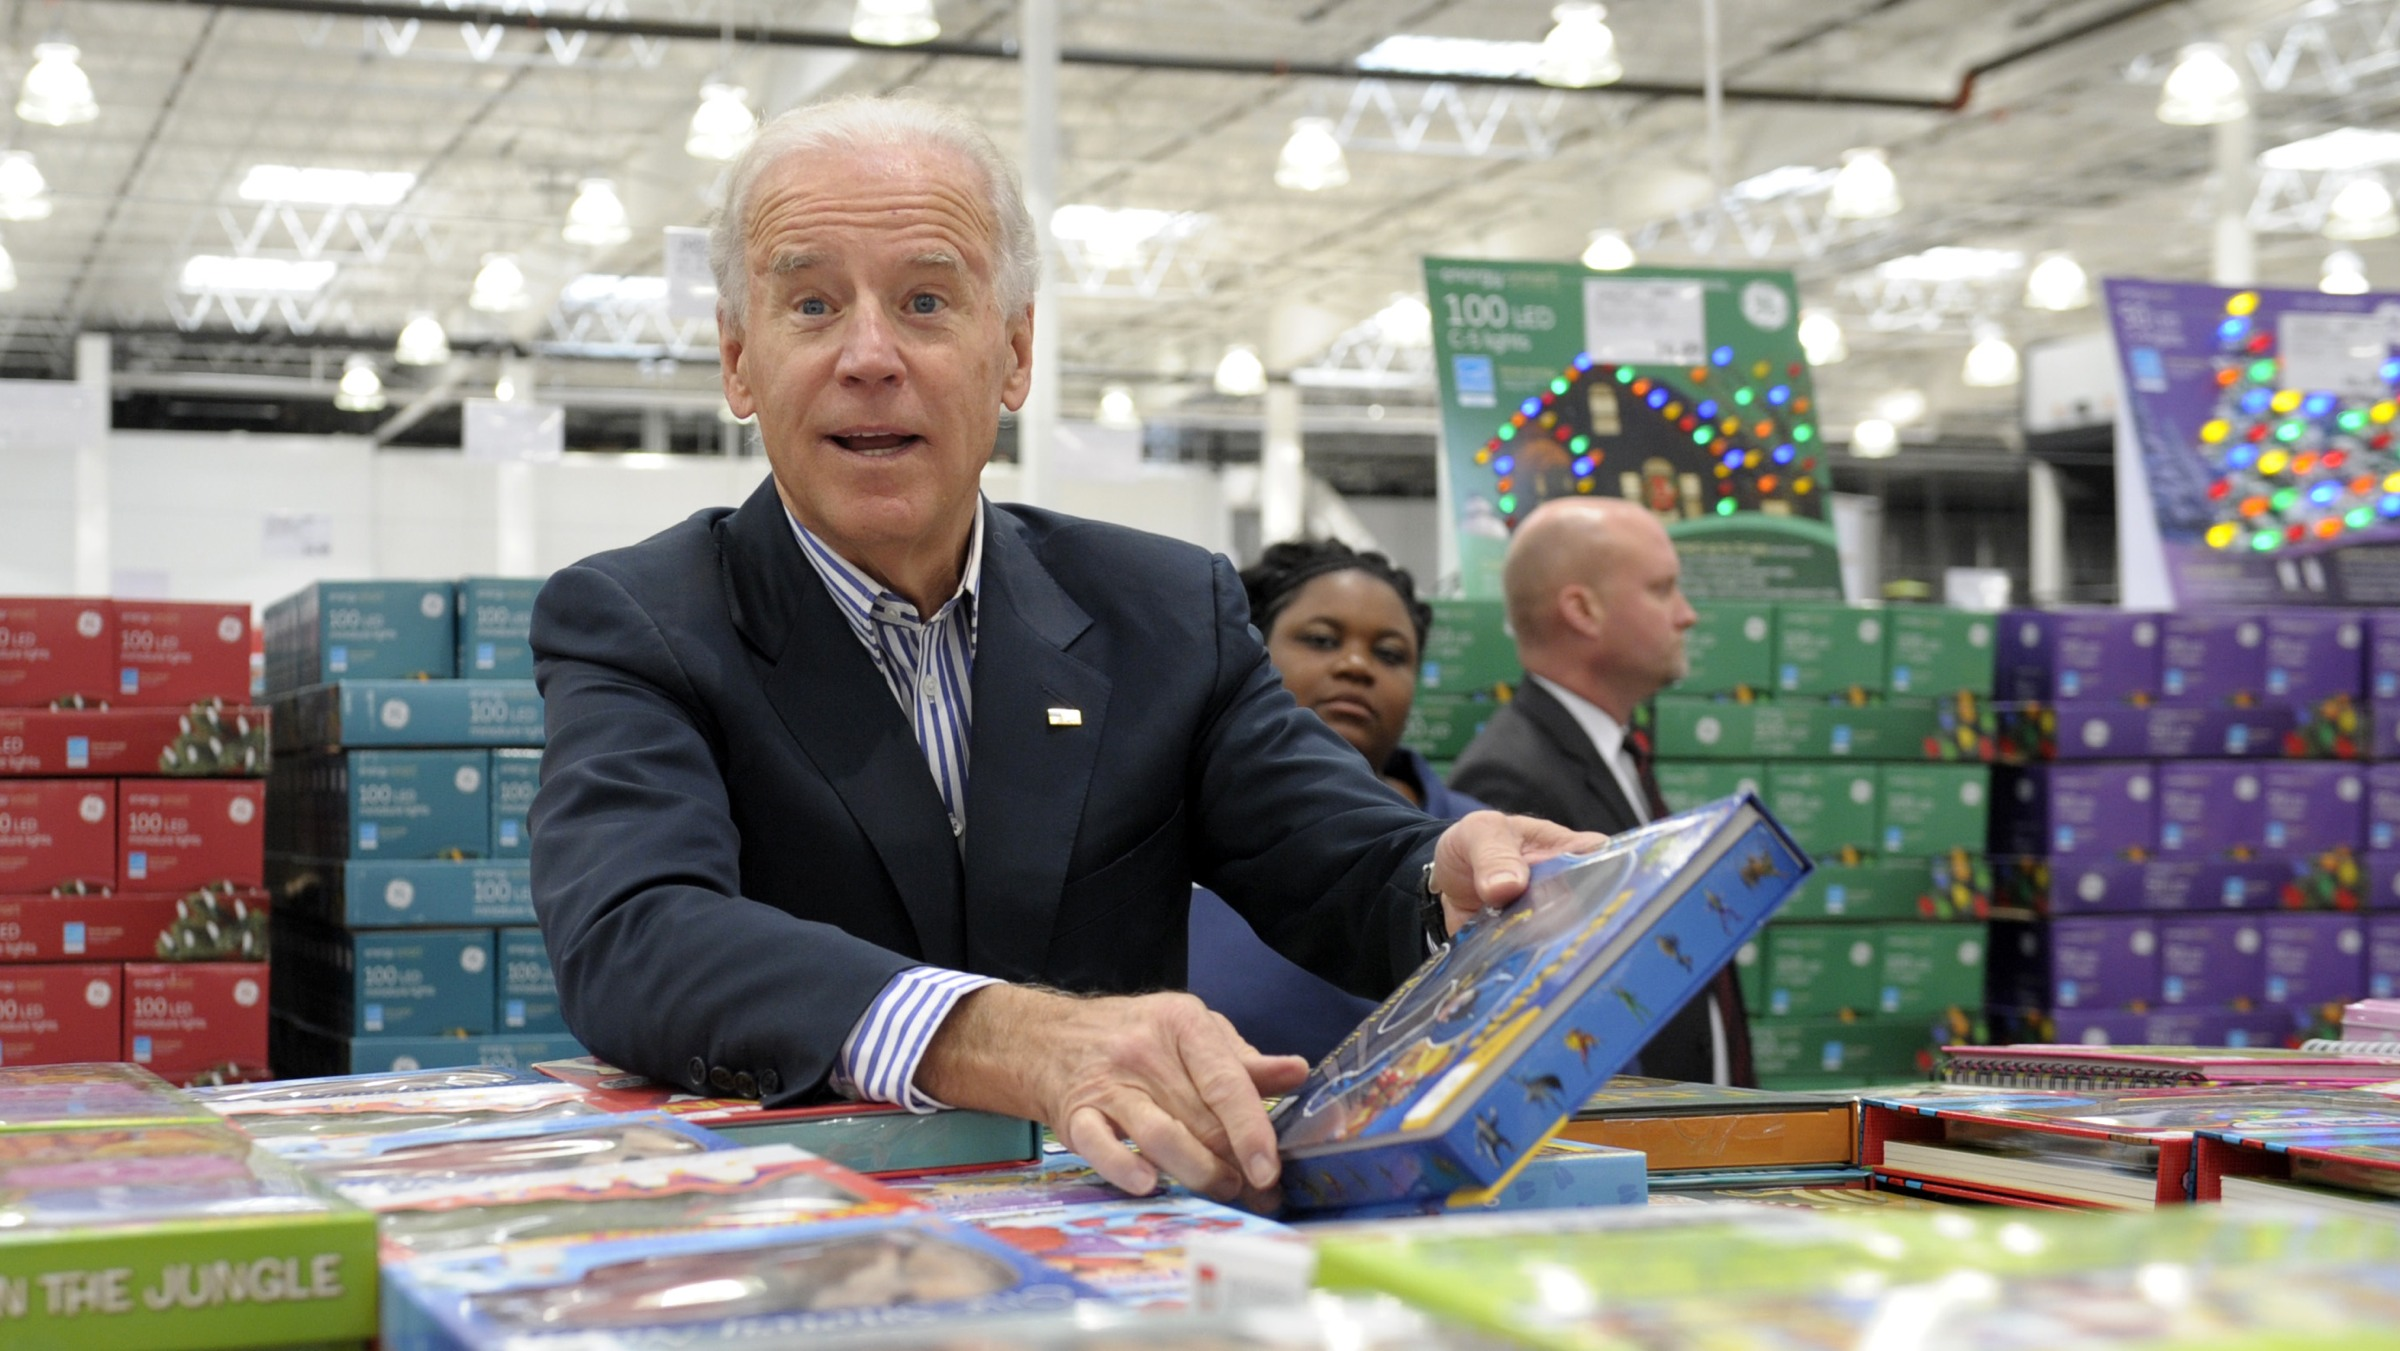 Vice President Joe Biden looks over a selection of books while shopping at a Costco in Washington, Thursday, Nov. 29, 2012. Biden went shopping for presents and to highlight the importance of renewing middle-class tax cuts so families and businesses have more certainty at this critical time for our economy. (AP Photo/Susan Walsh)